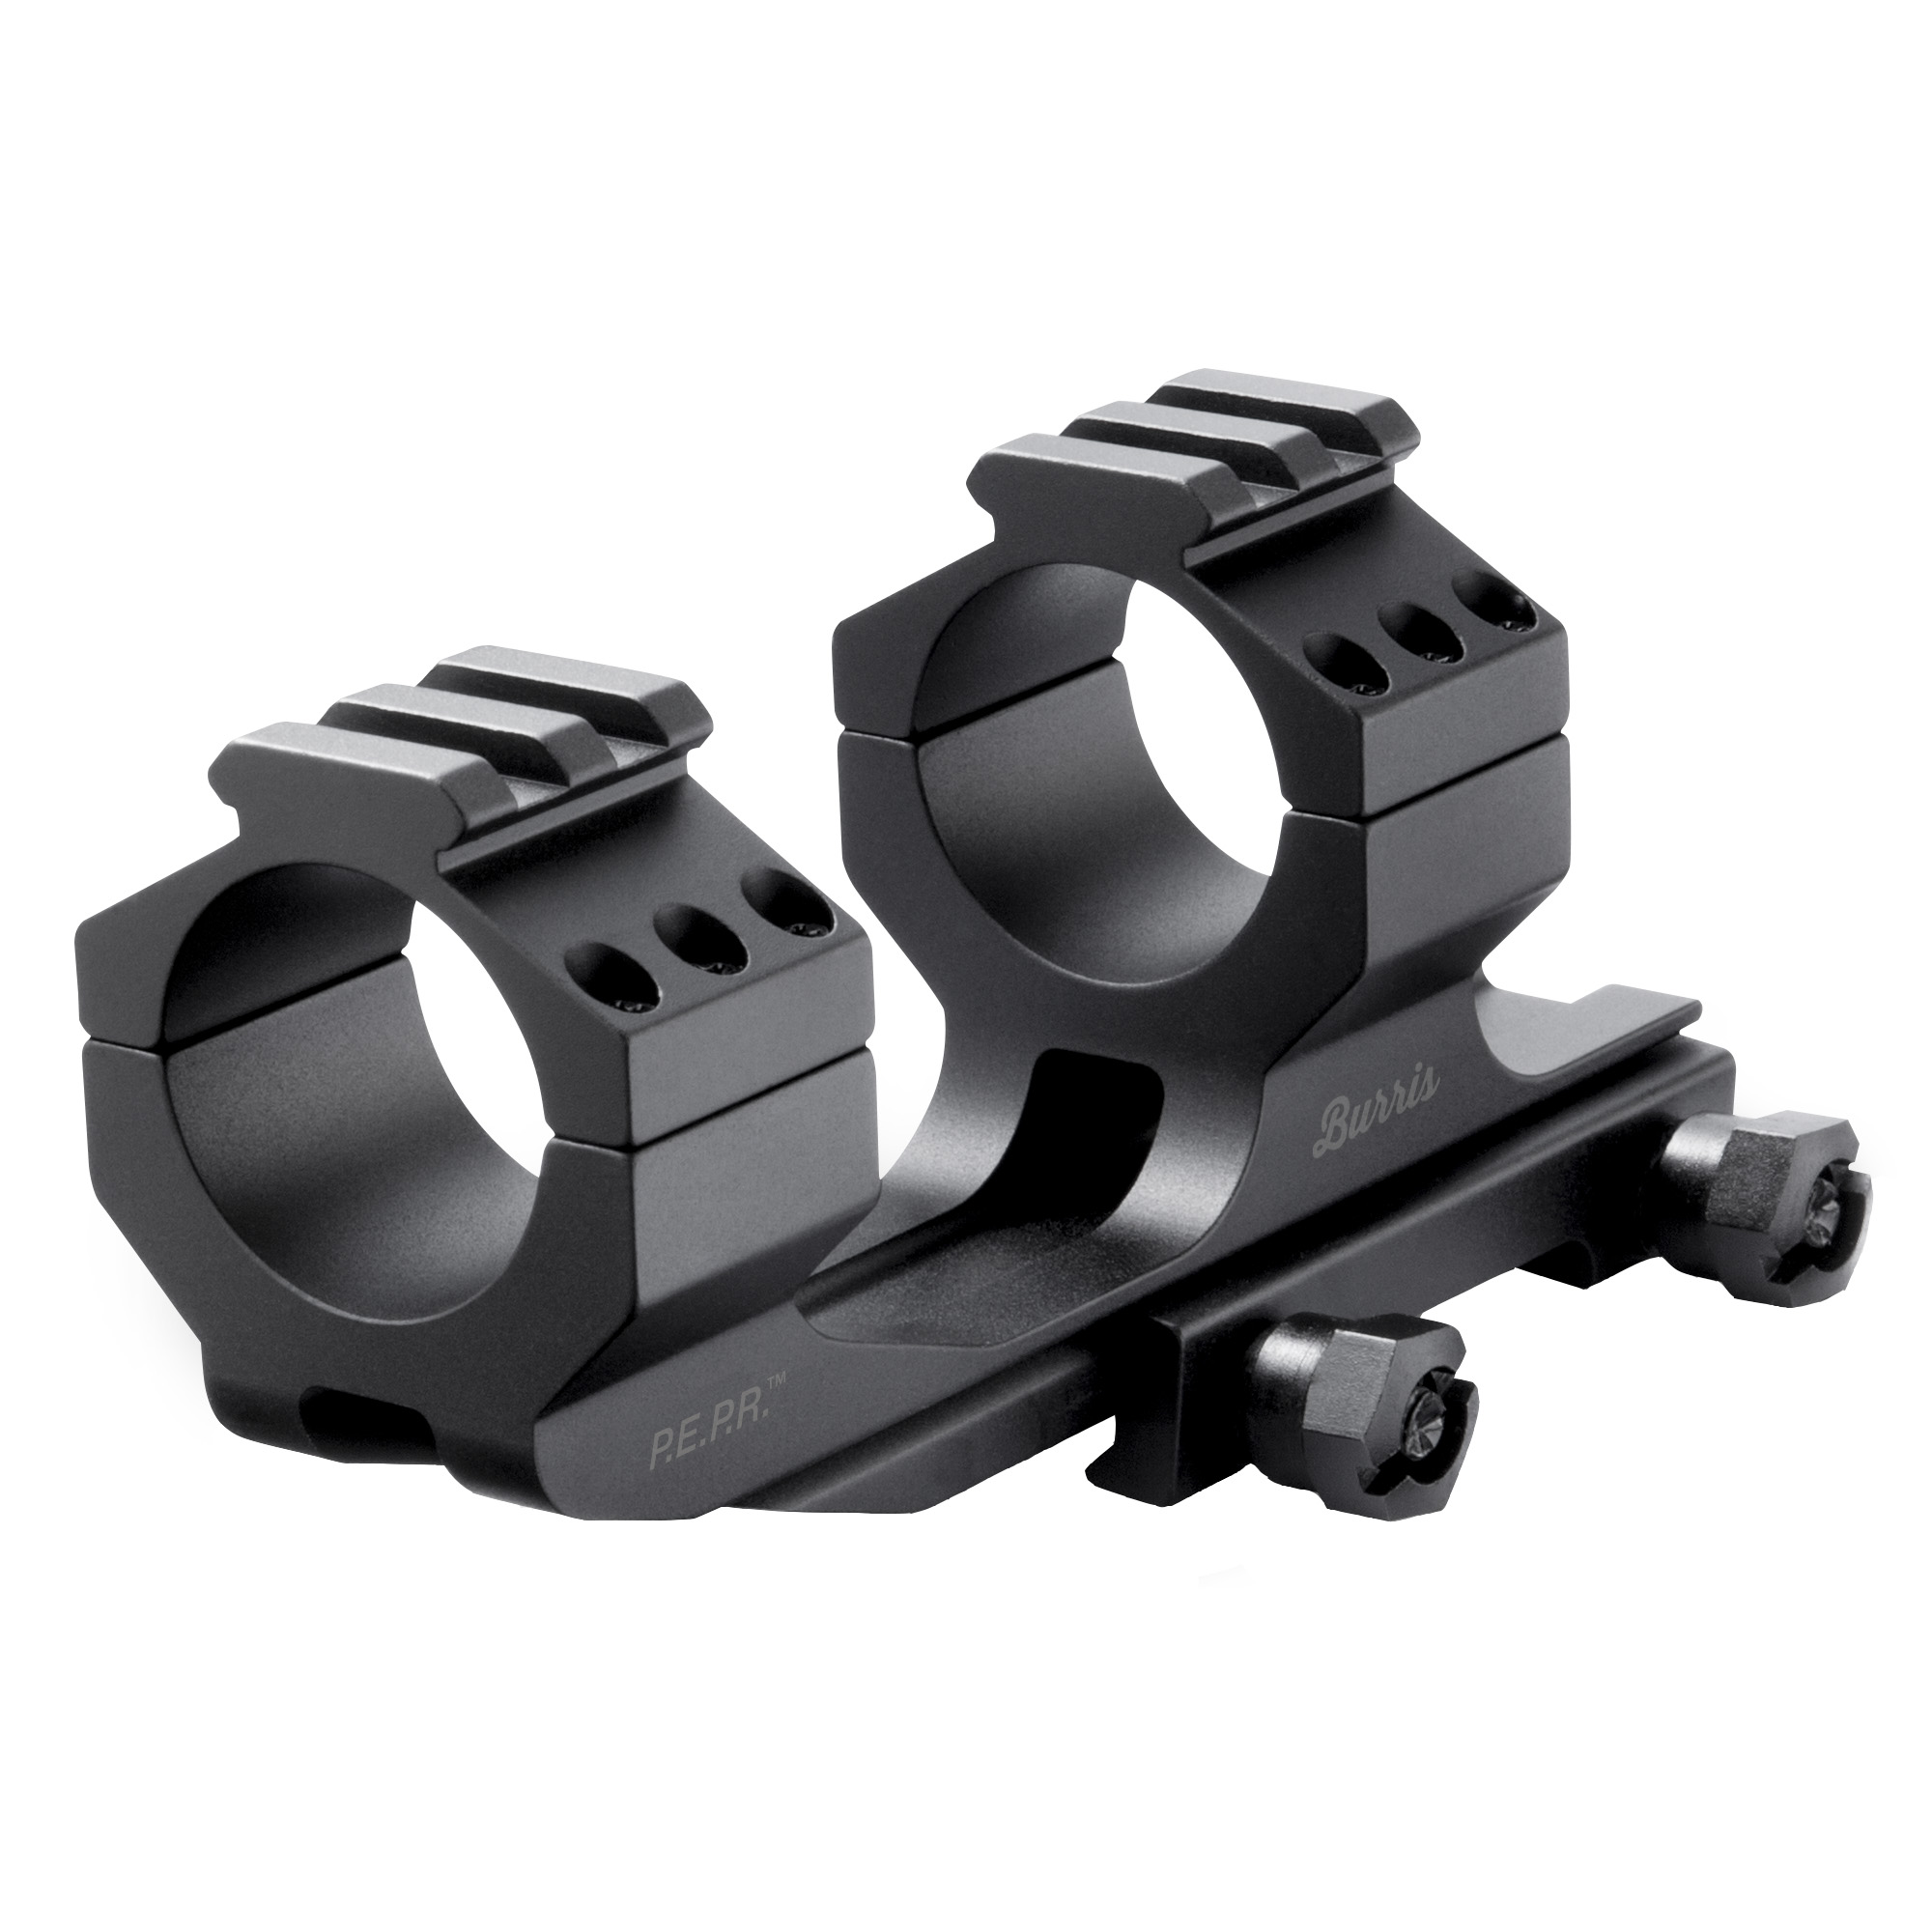 The AR- P.E.P.R. mount is a full ring and base mounting solution that allows for up to 2 inches of forward scope positioning and provides optimum eye relief and full field of view.